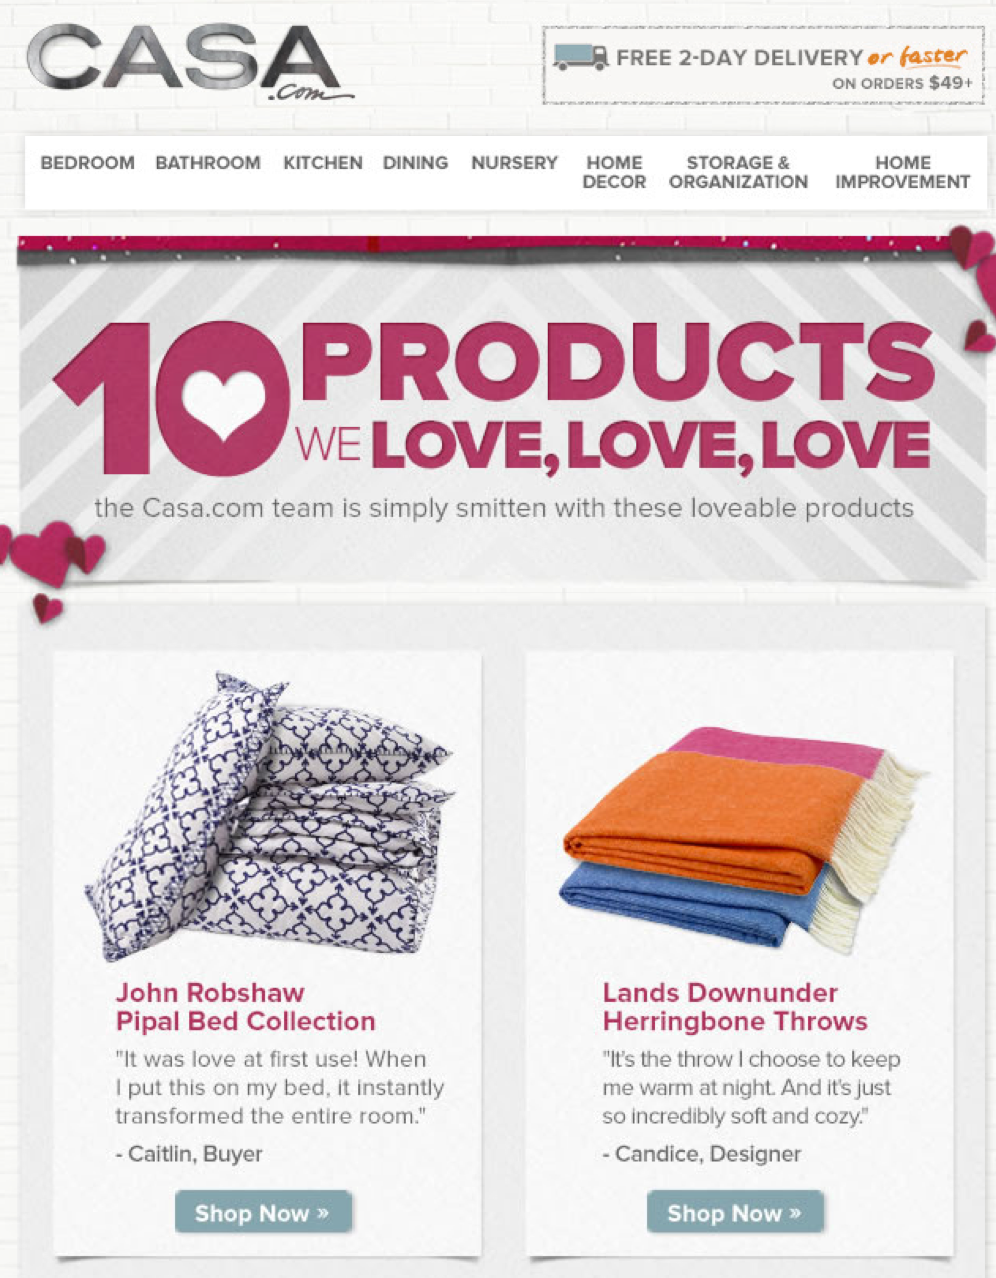 Email: 10 Products We Love, Love, Love